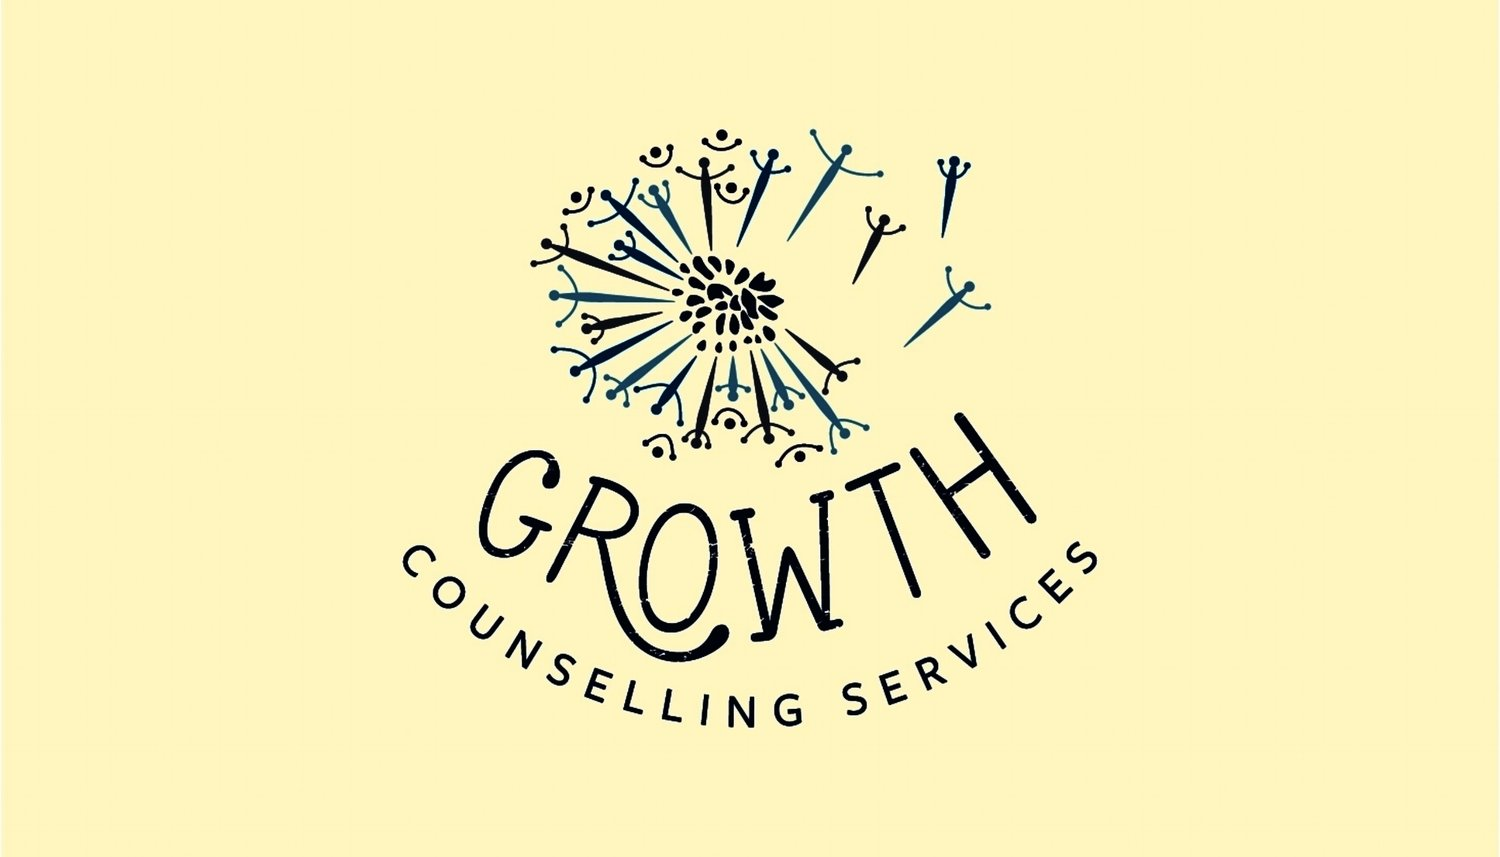 Growth Counselling Services Brant County | Counselling services Brantford